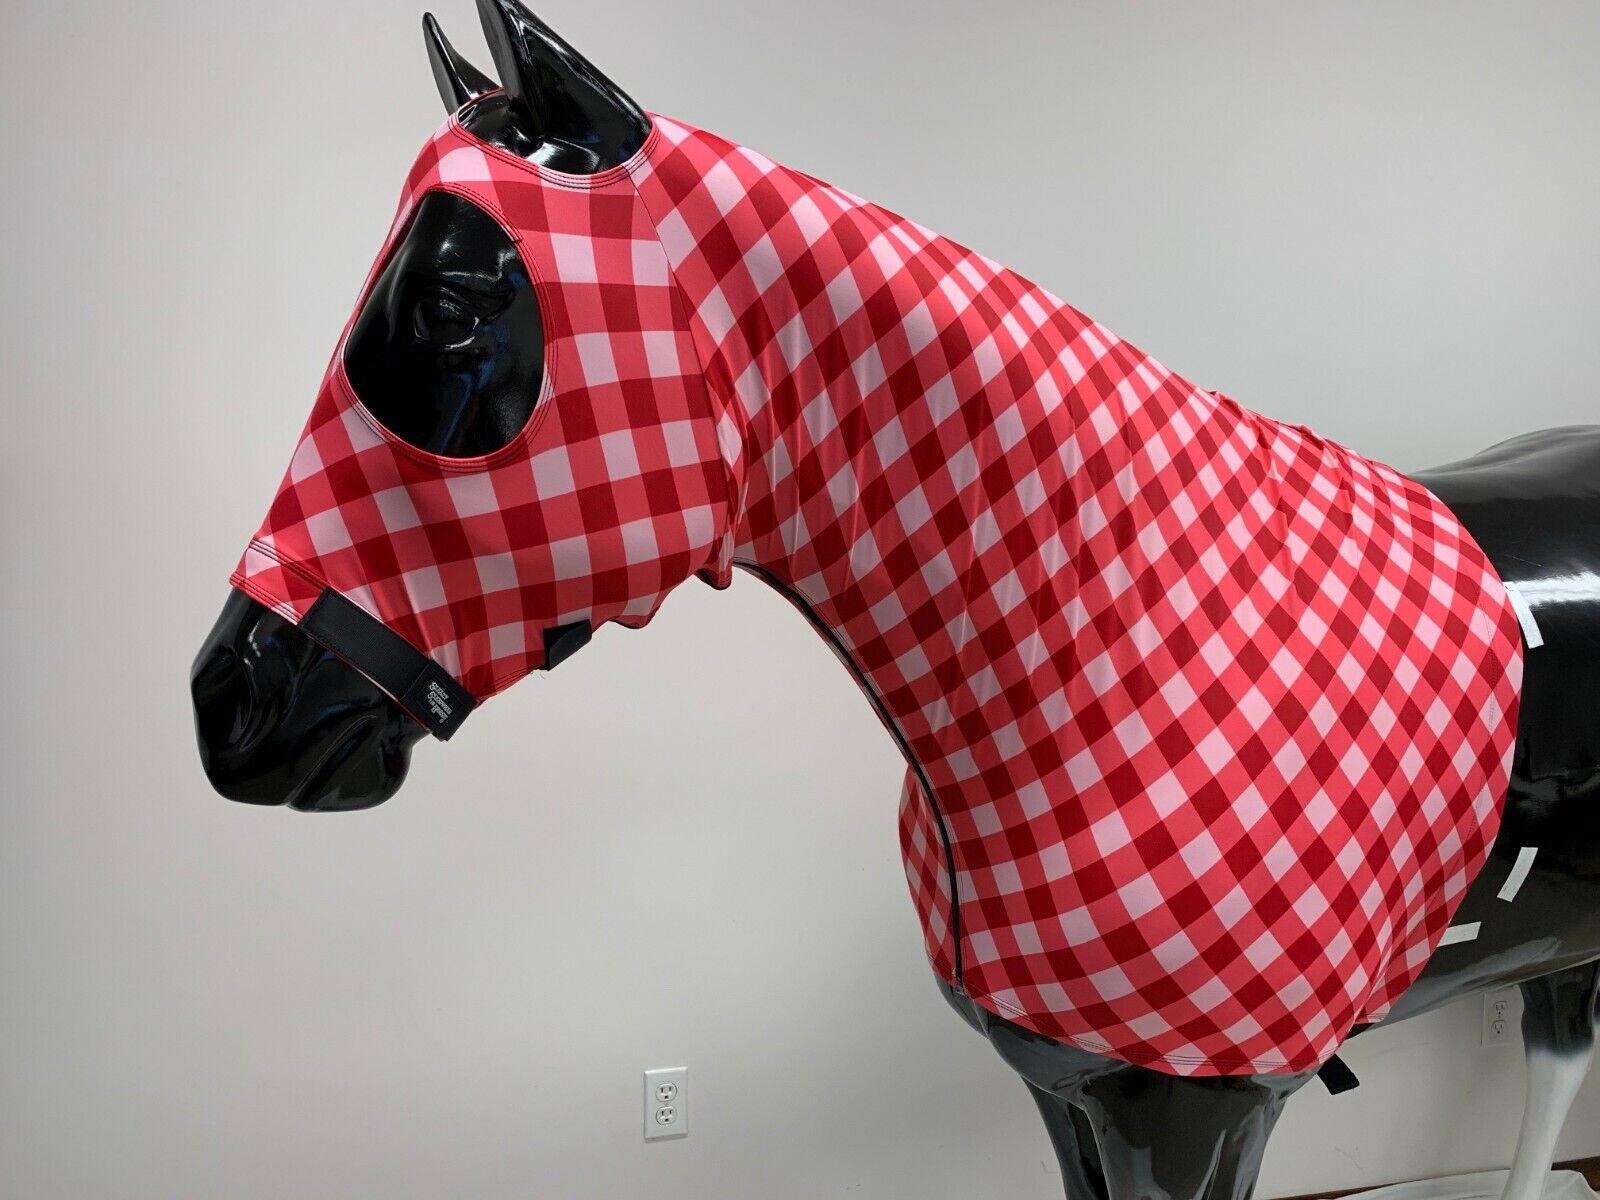 Sleazy Sleepwear  Horse Hood Print Size Large with ZIPPER & Mat ng Tail Bag  professional integrated online shopping mall